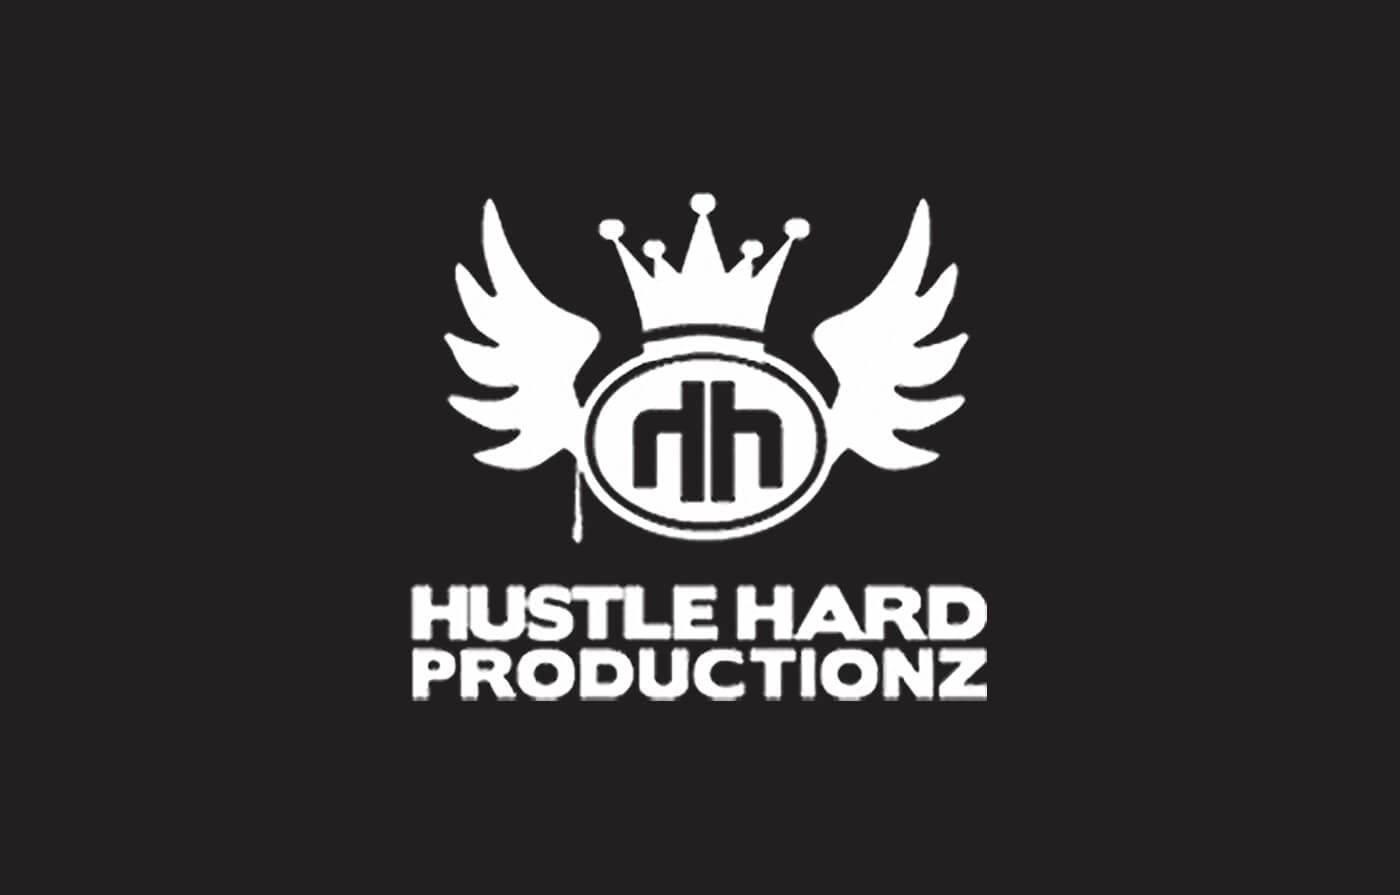 2009 Hustle Hard Productionz logo